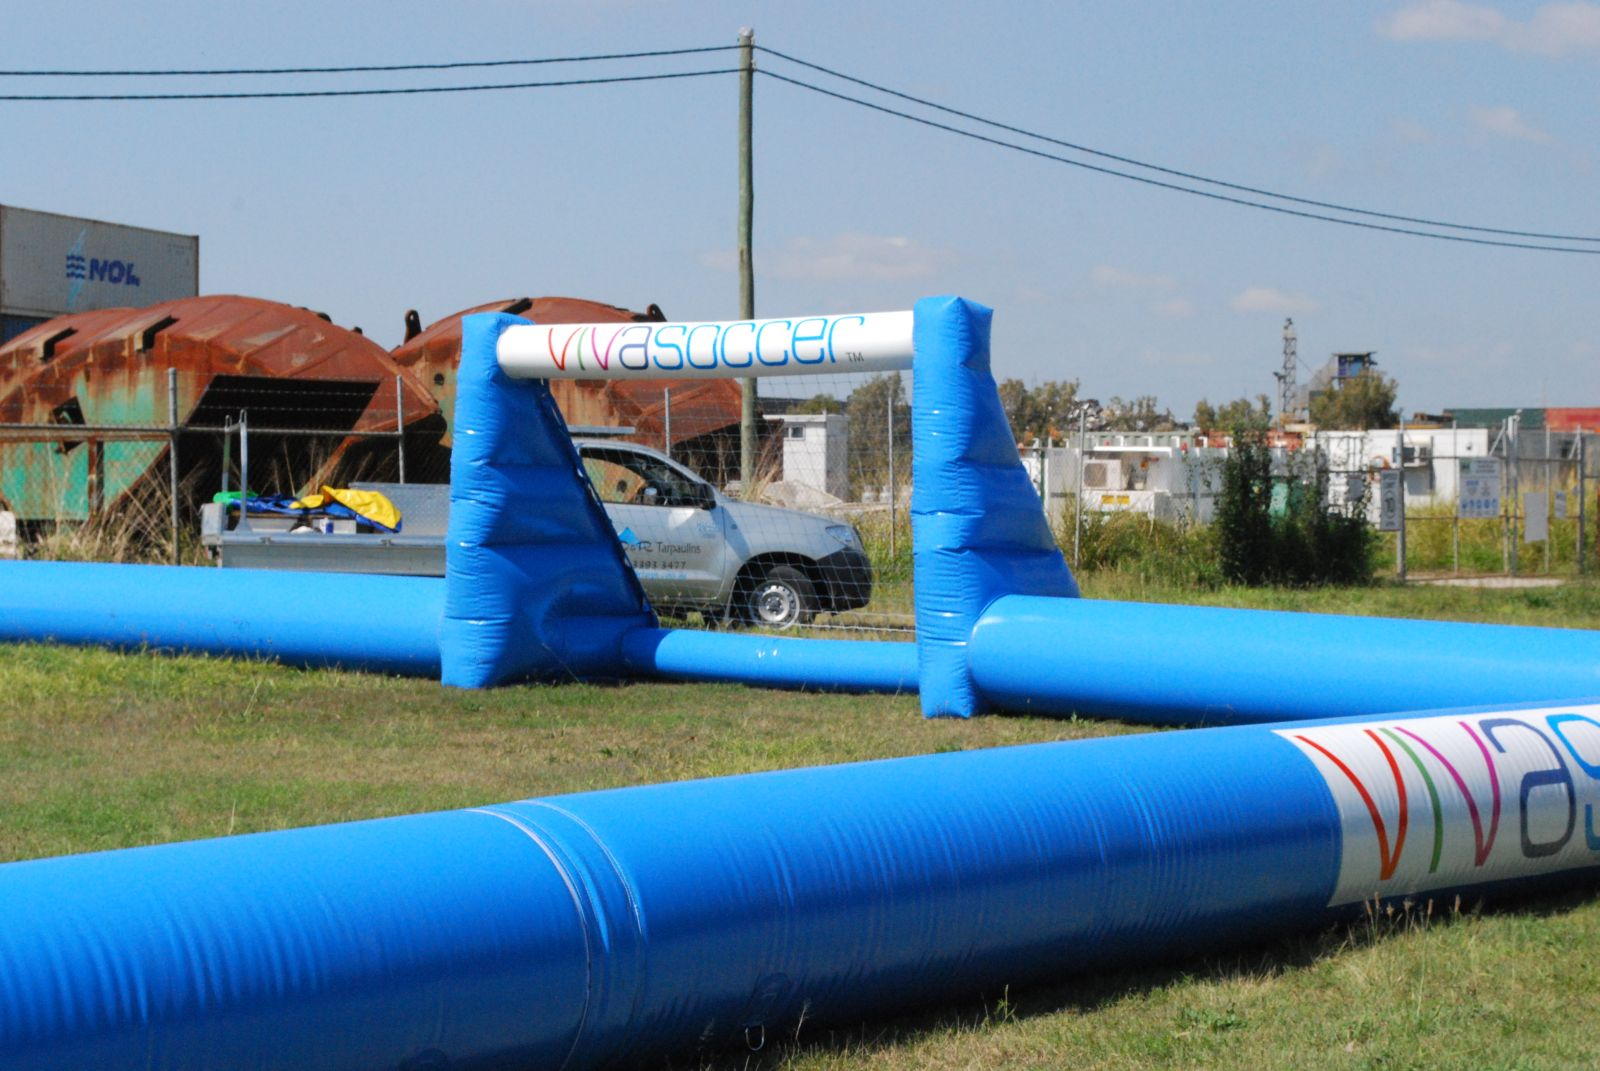 Inflatable soccer goals and fields